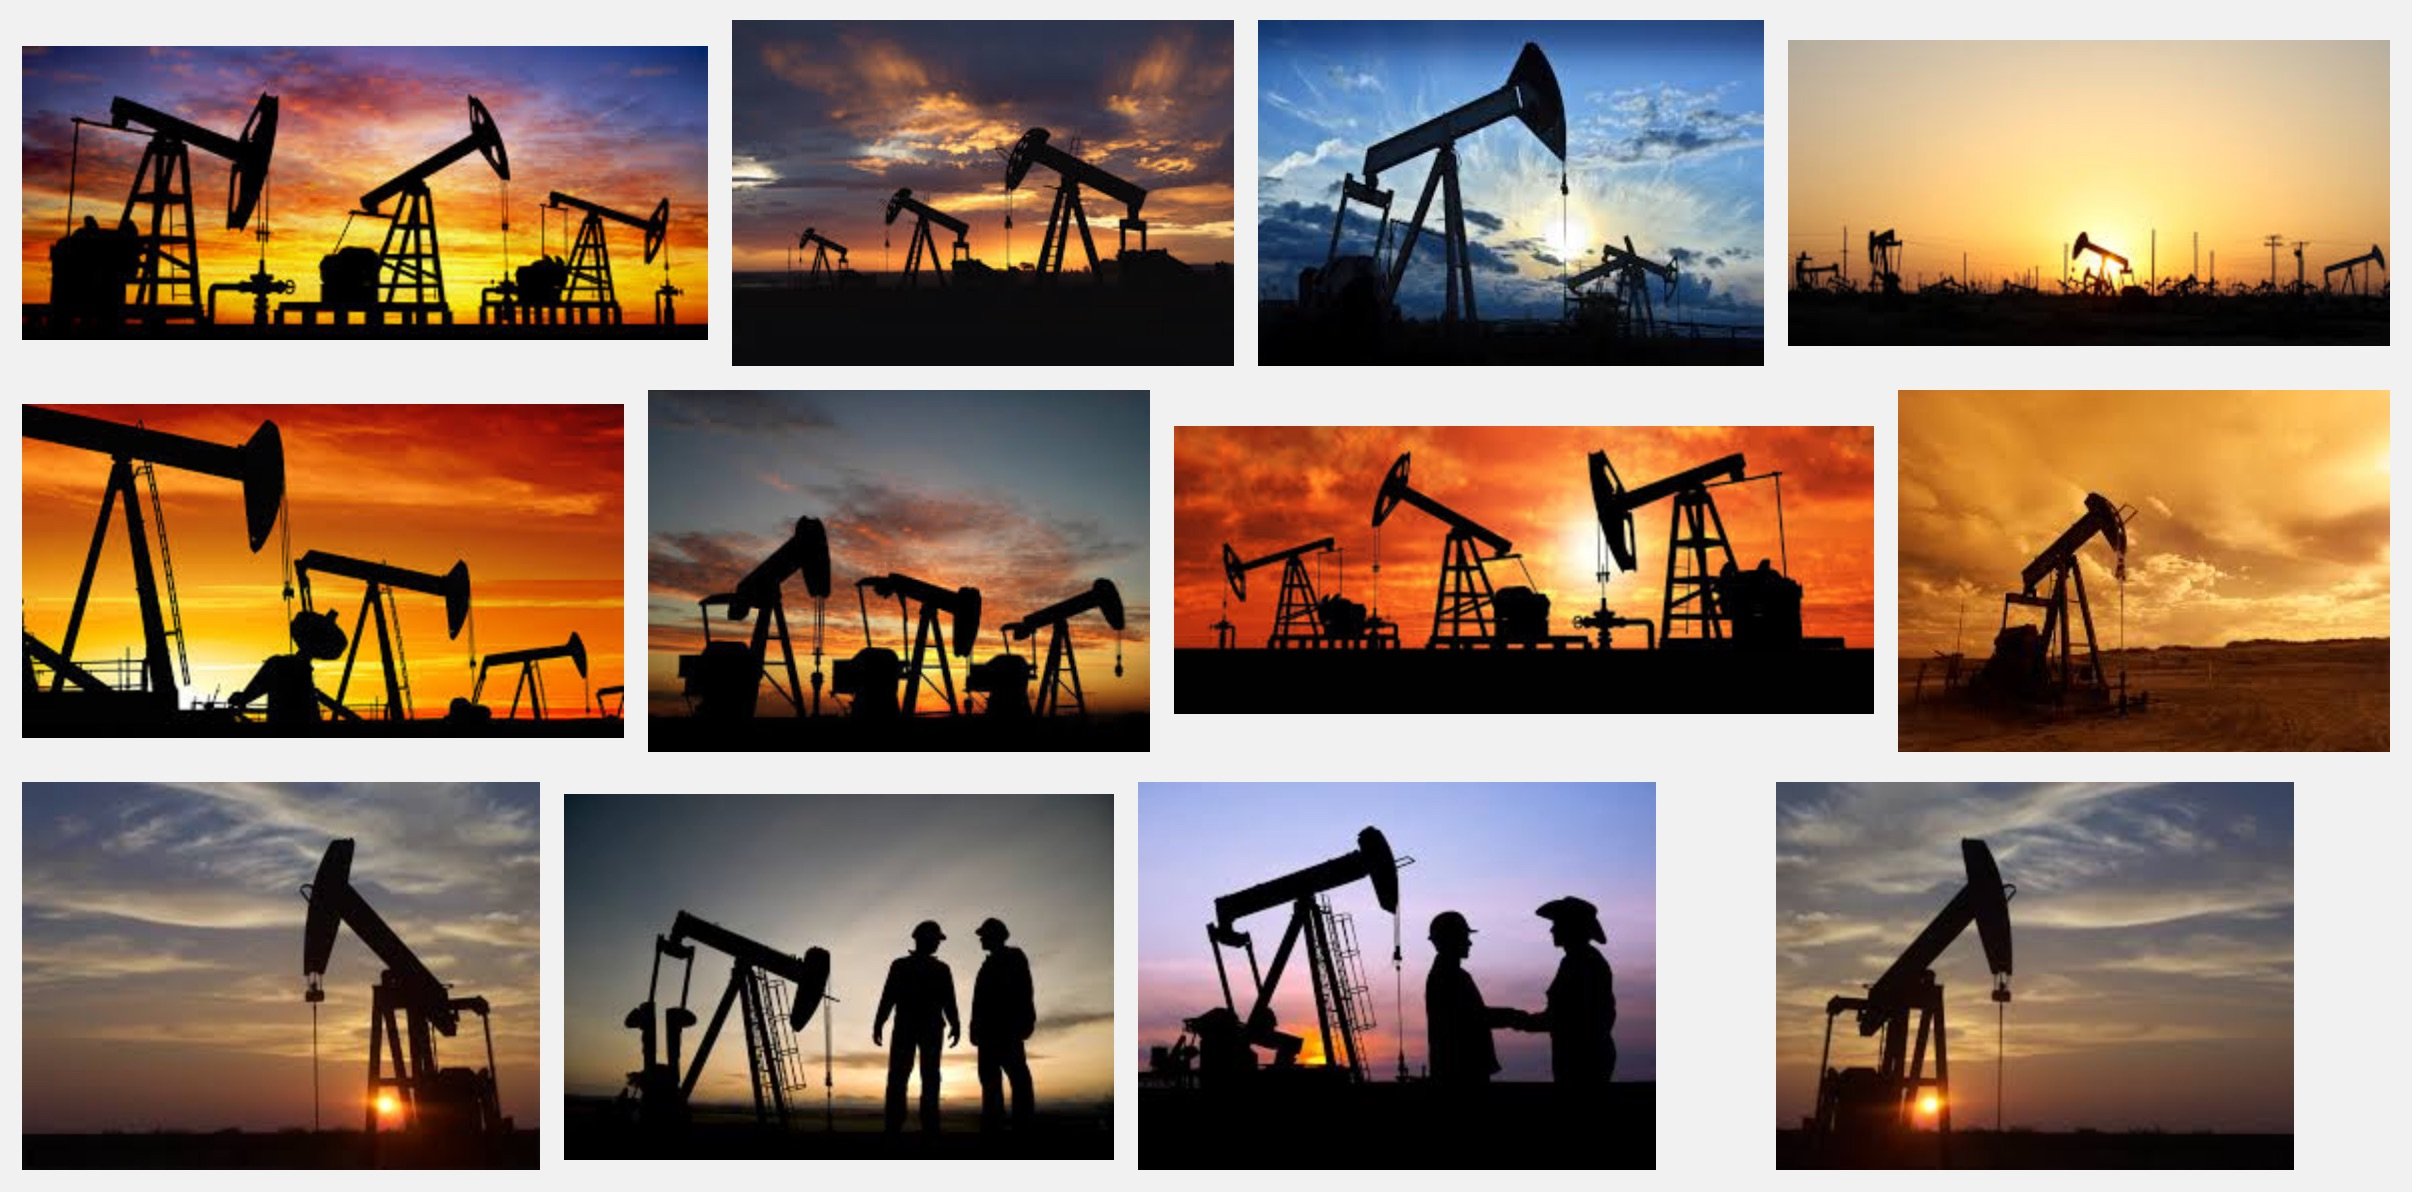 google-search-oilfield